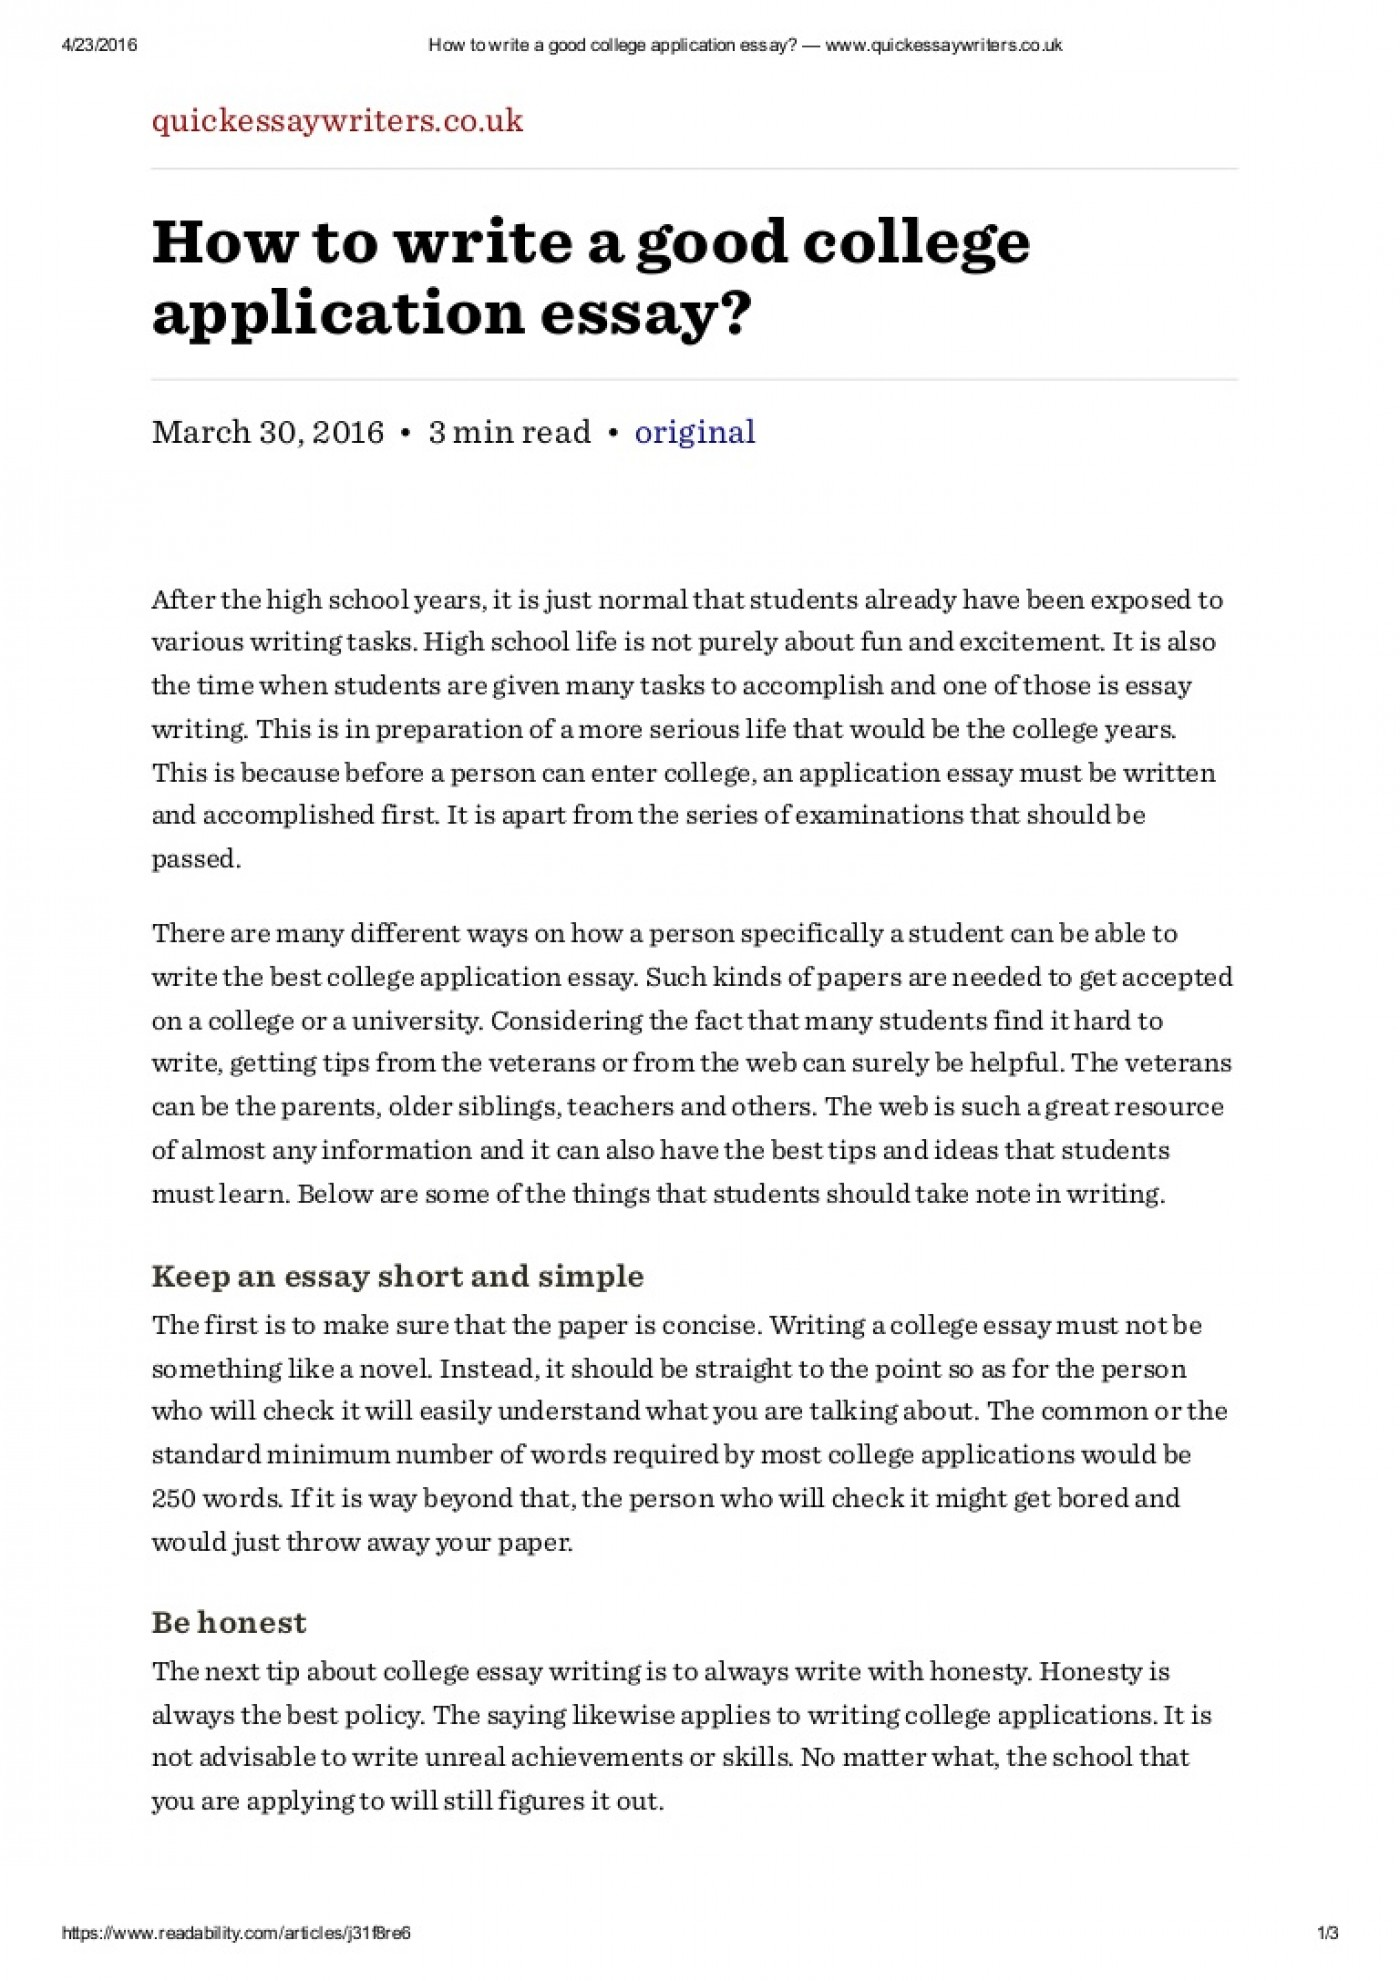 009 Howtowriteagoodcollegeapplicationessaywww Thumbnail Essay Example Writing College Rare A Application How To Write Outline Tips For Entrance 1400